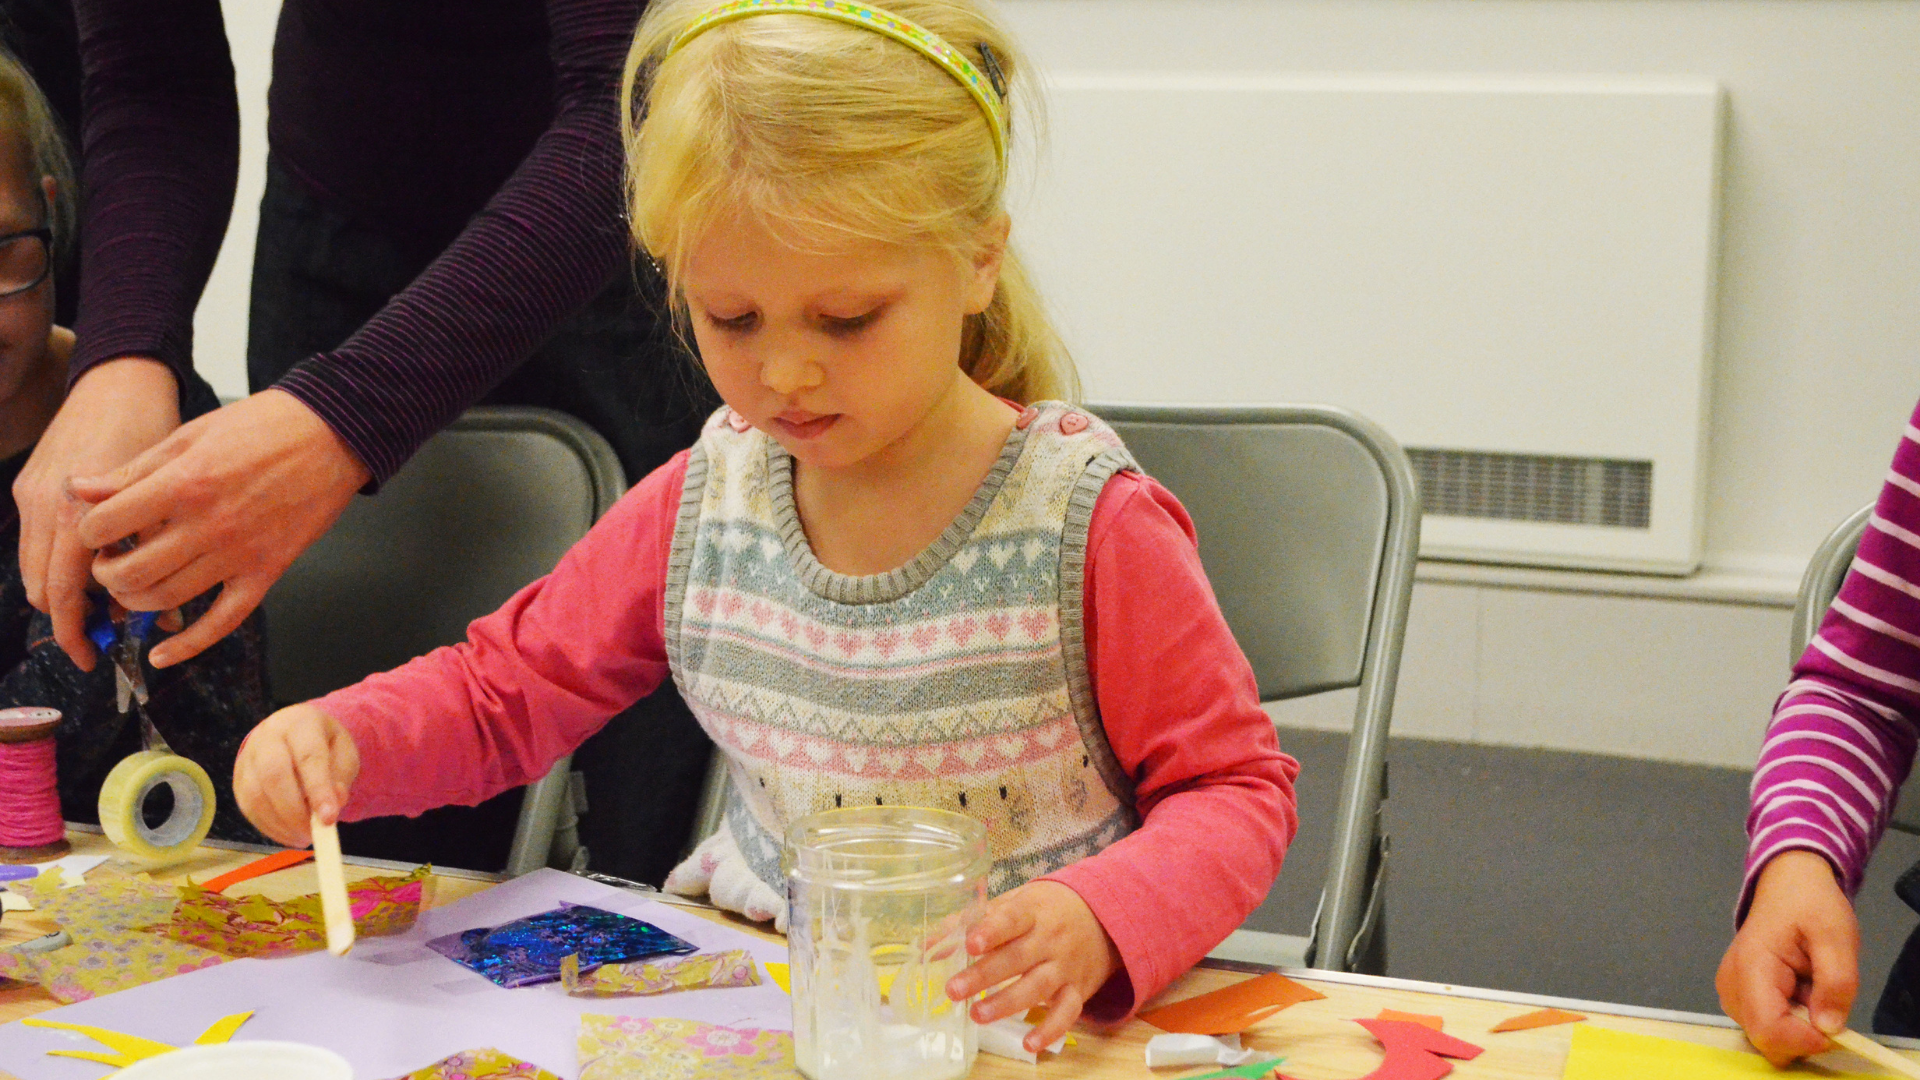 A young blonde girl partakes in craft activities with a look of concentration on her face